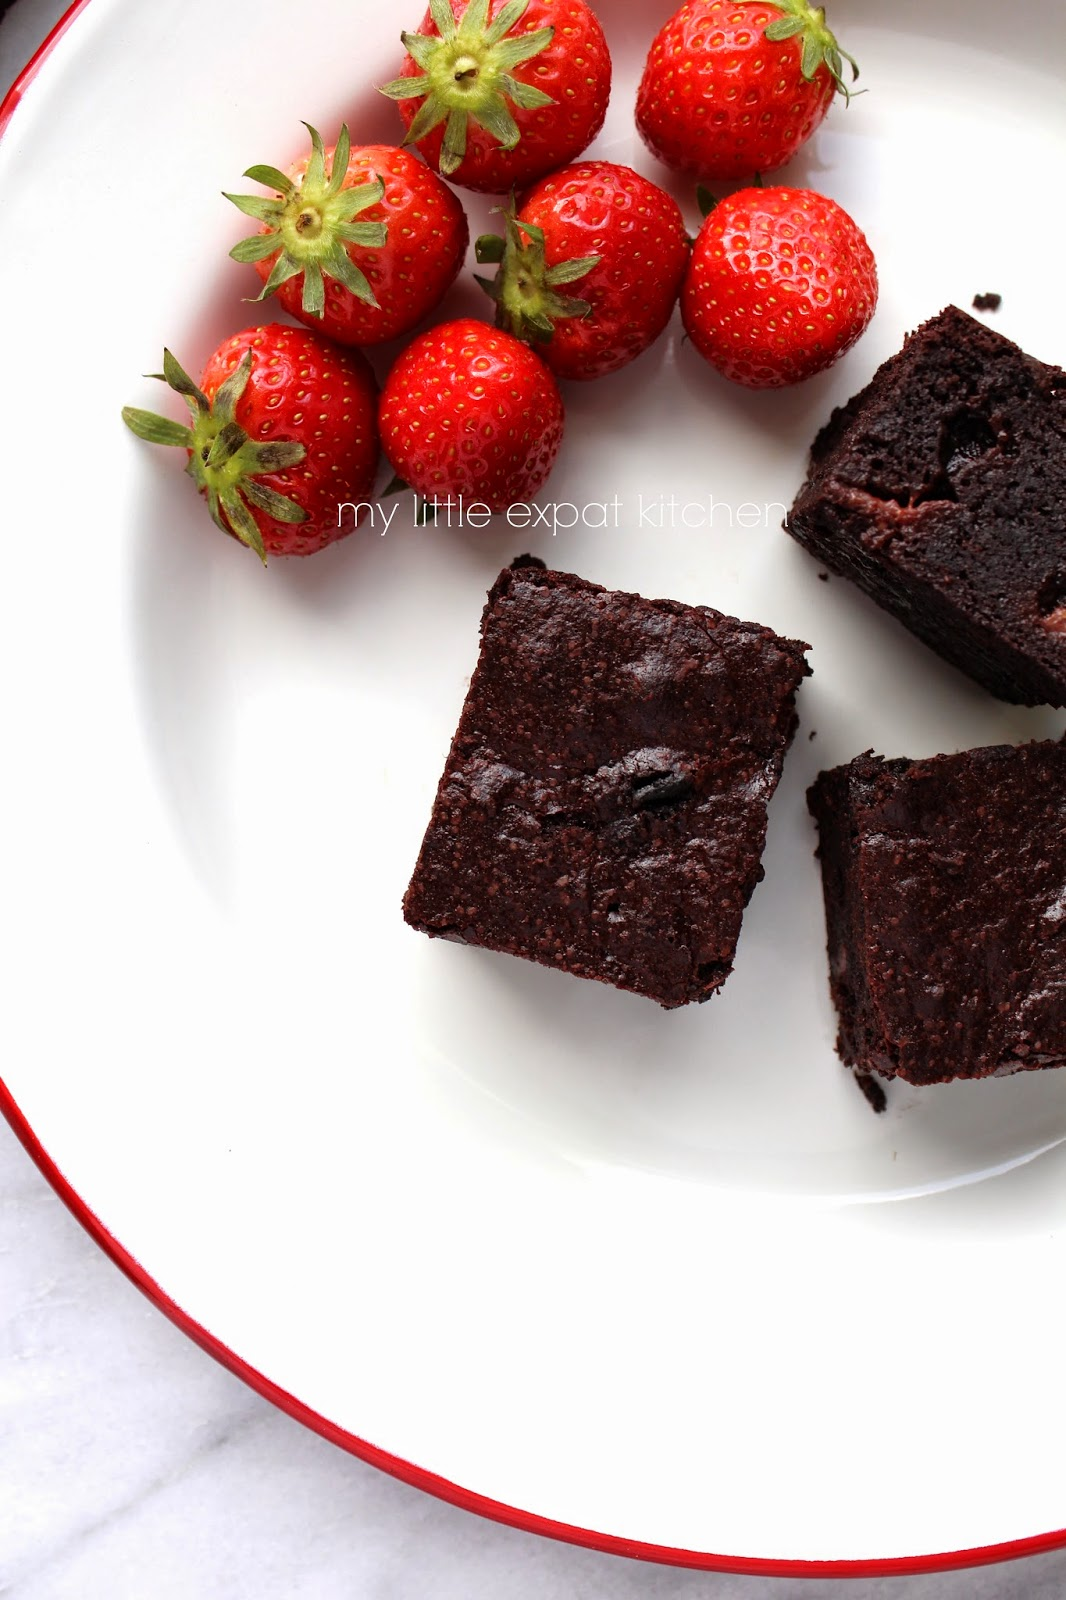 Fudgy cocoa and strawberry brownies